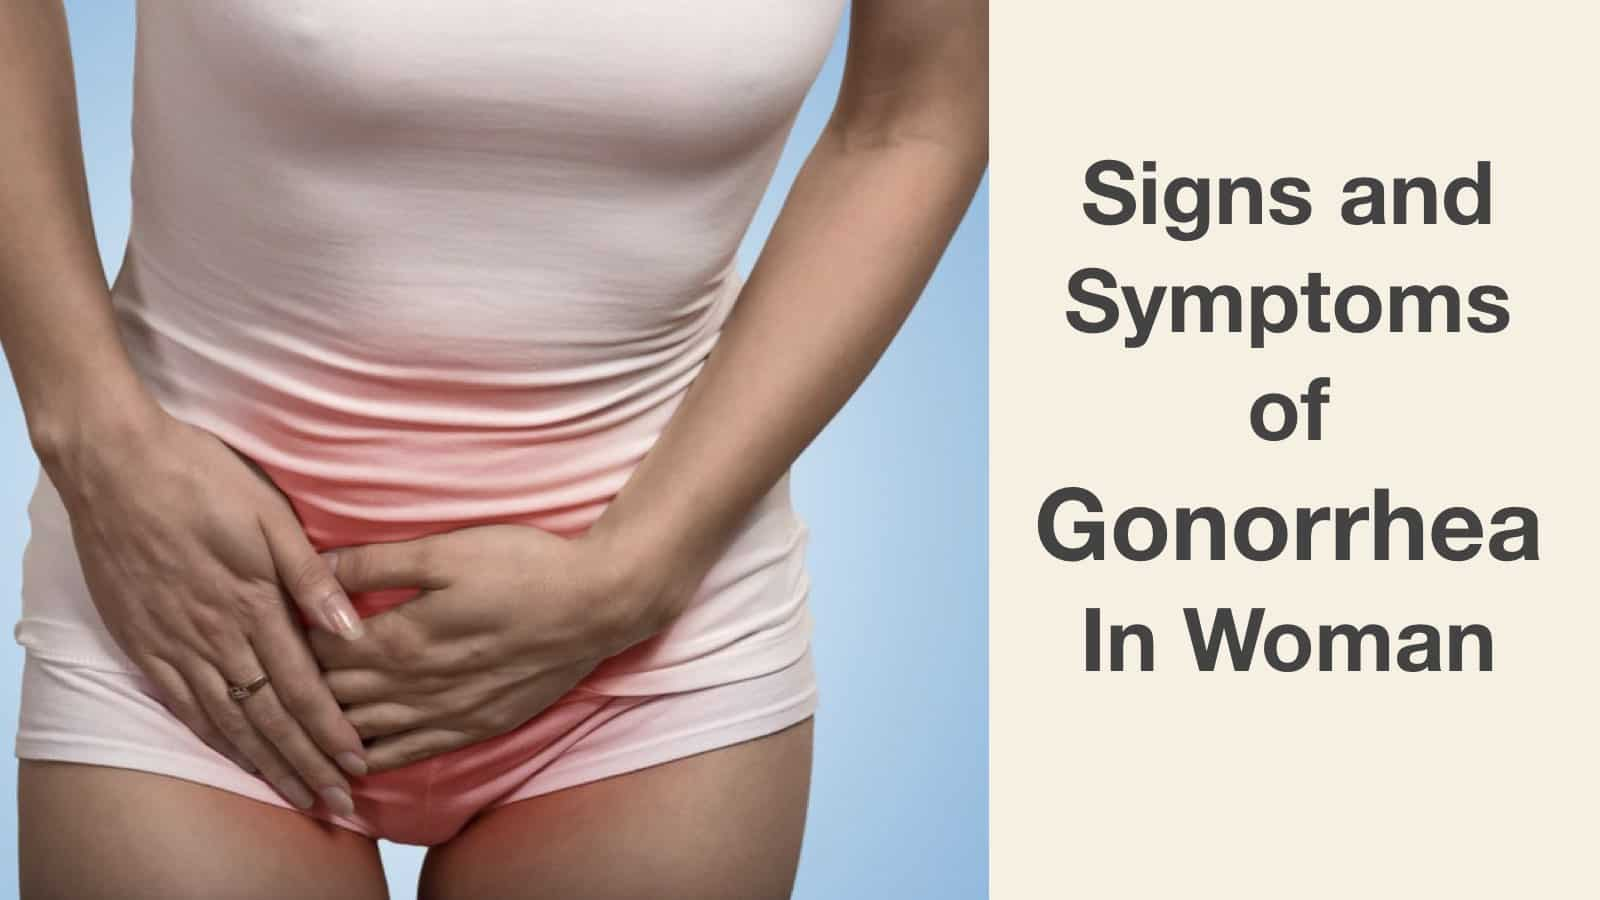 Symptoms Of Gonorrhea